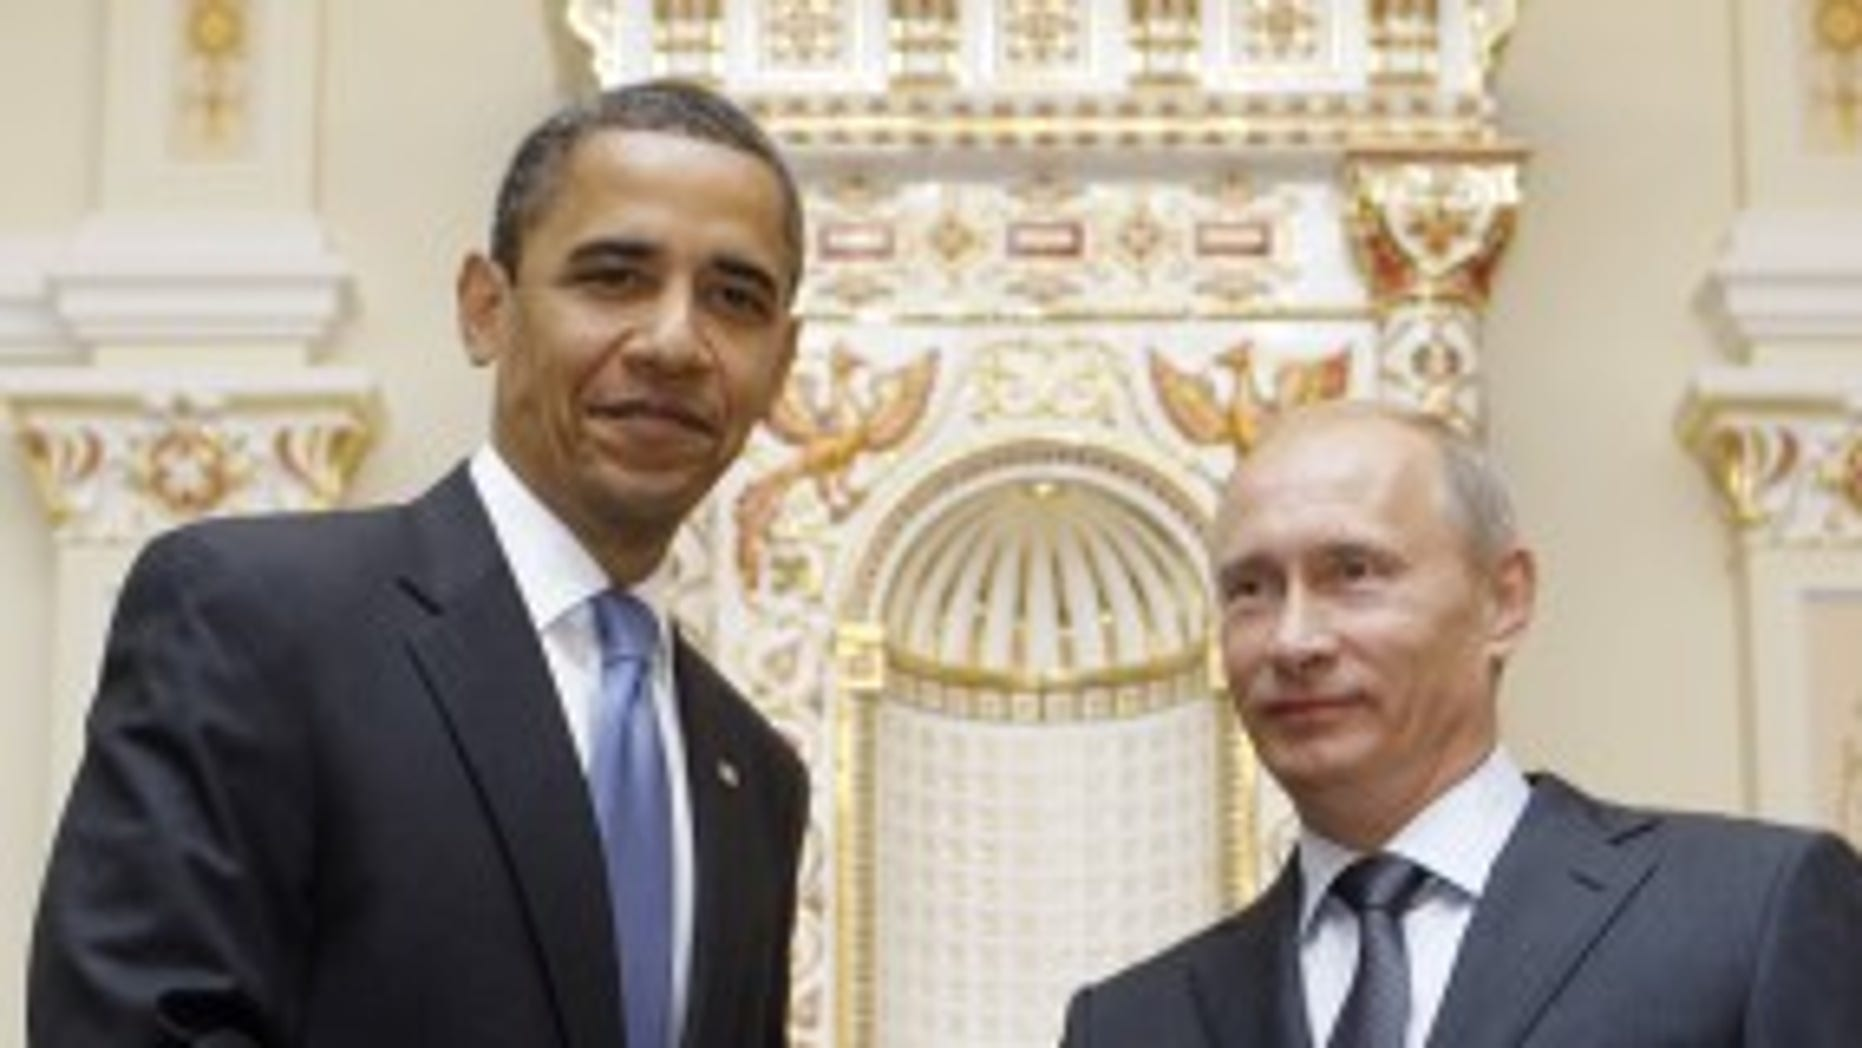 President Barack Obama, left,  shakes hands with Russian Prime Minister Vladimir Putin during a meeting at Novo Ogaryovo, Tuesday, July 7, 2009, in Moscow. (AP Photo/Haraz N. Ghanbari)